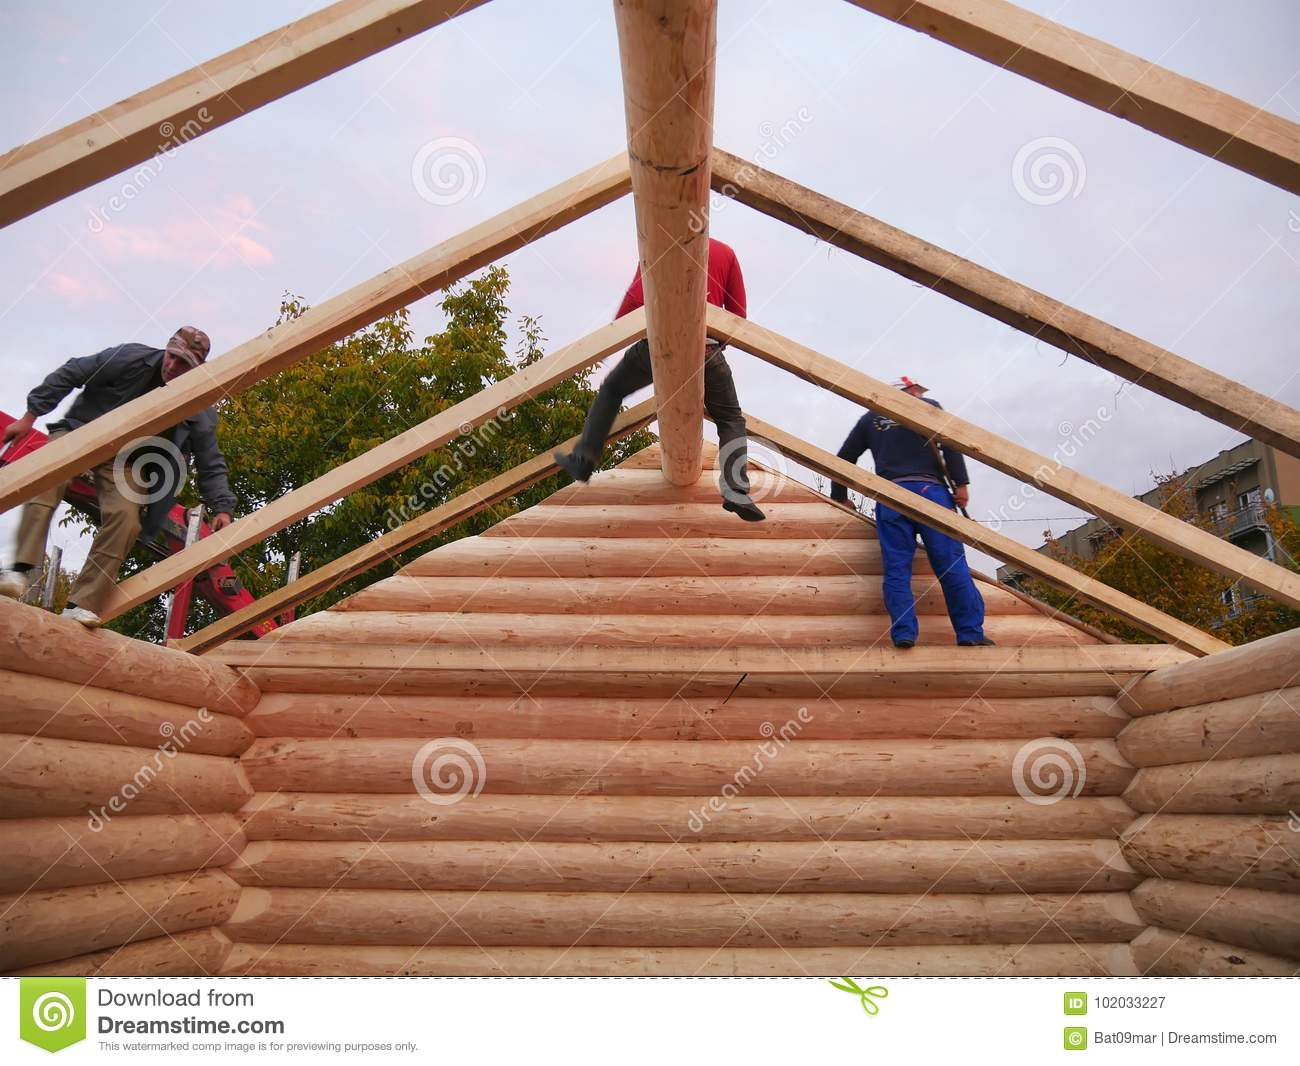 Carpenters assemble timber frame with common rafters on cabin roof